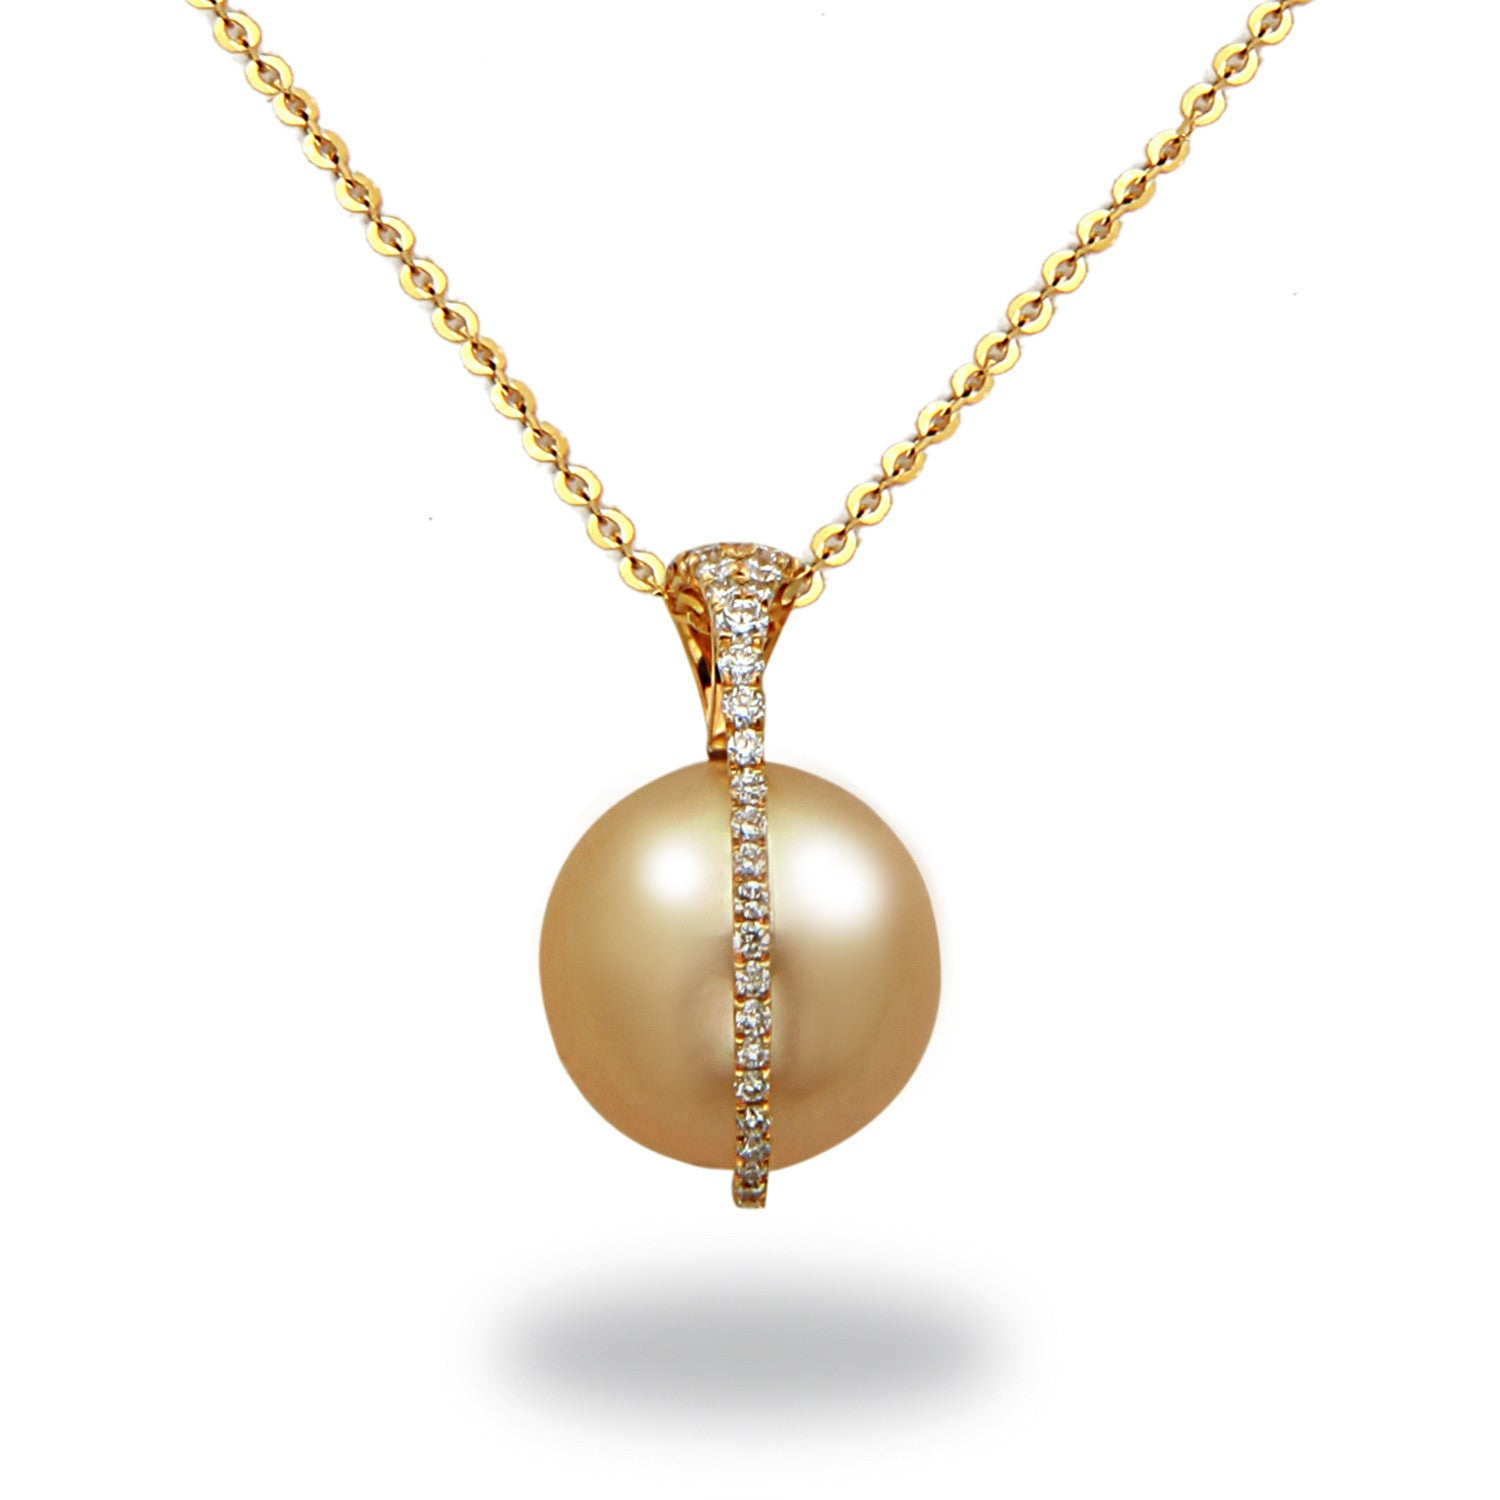 Galaxy Collection 11-12mm Golden South Sea Pearl and Diamond Pendant Necklace